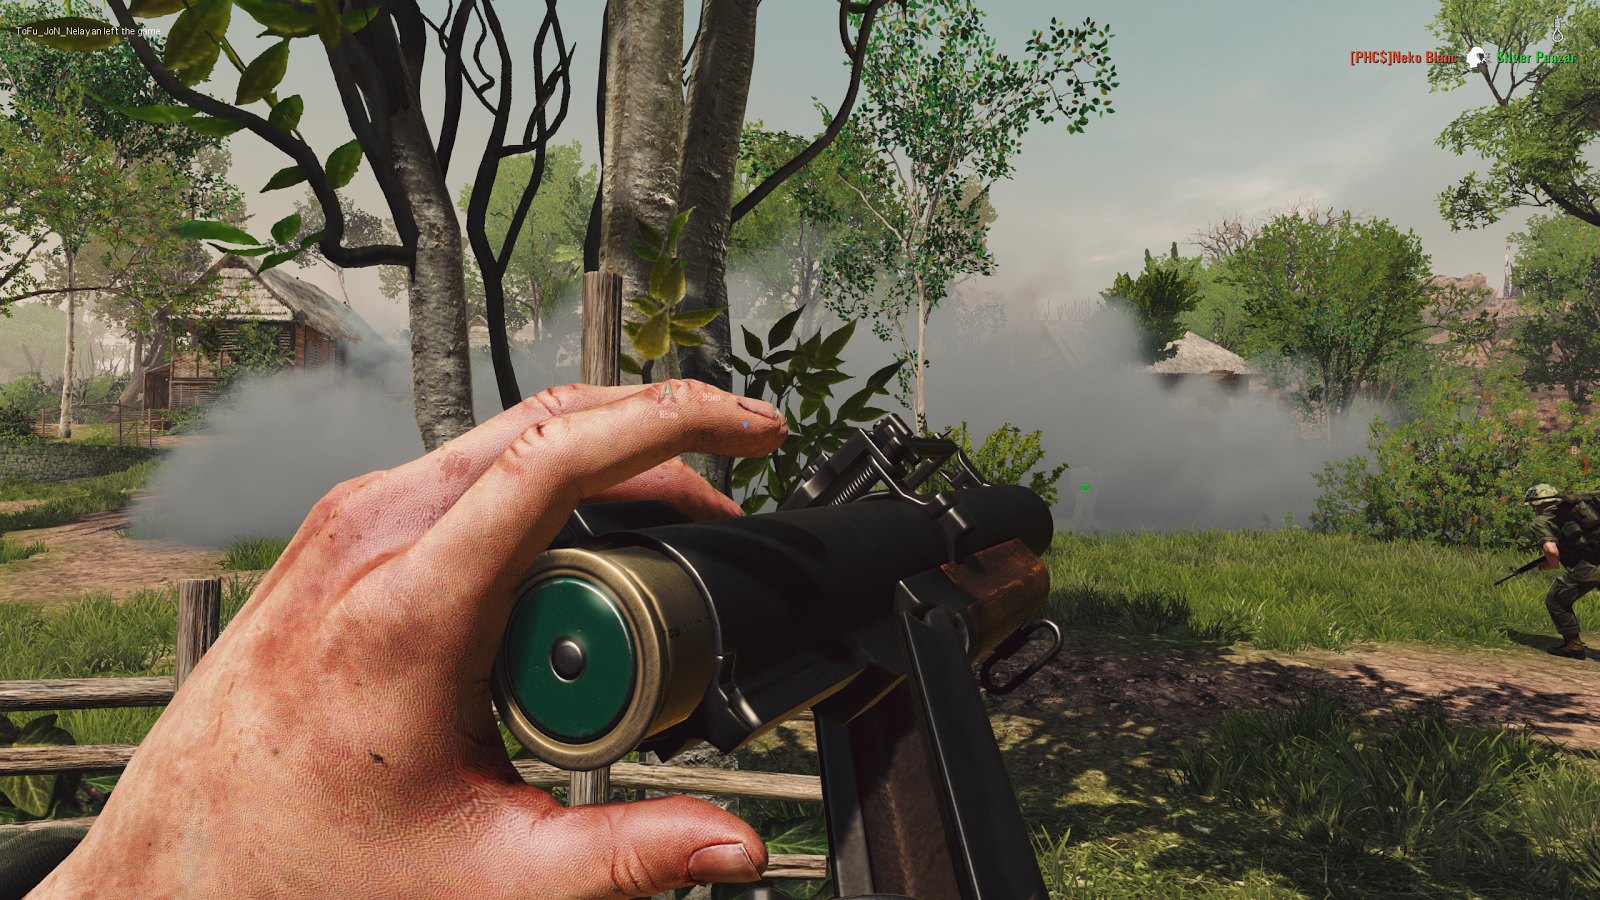 Rising Storm 2: Vietnam, the recently released sequel to Rising Storm, uses Unreal Engine 3, even in the age of Unreal 4. RS2 is no battlefield, there's more in-game voice chatter that WILL be heard in your voice comm channel, including the Vietnamese announcer sounding like, no offence, Jacky Chan. This is where your headset having its own dedicated sound processing becomes very useful.